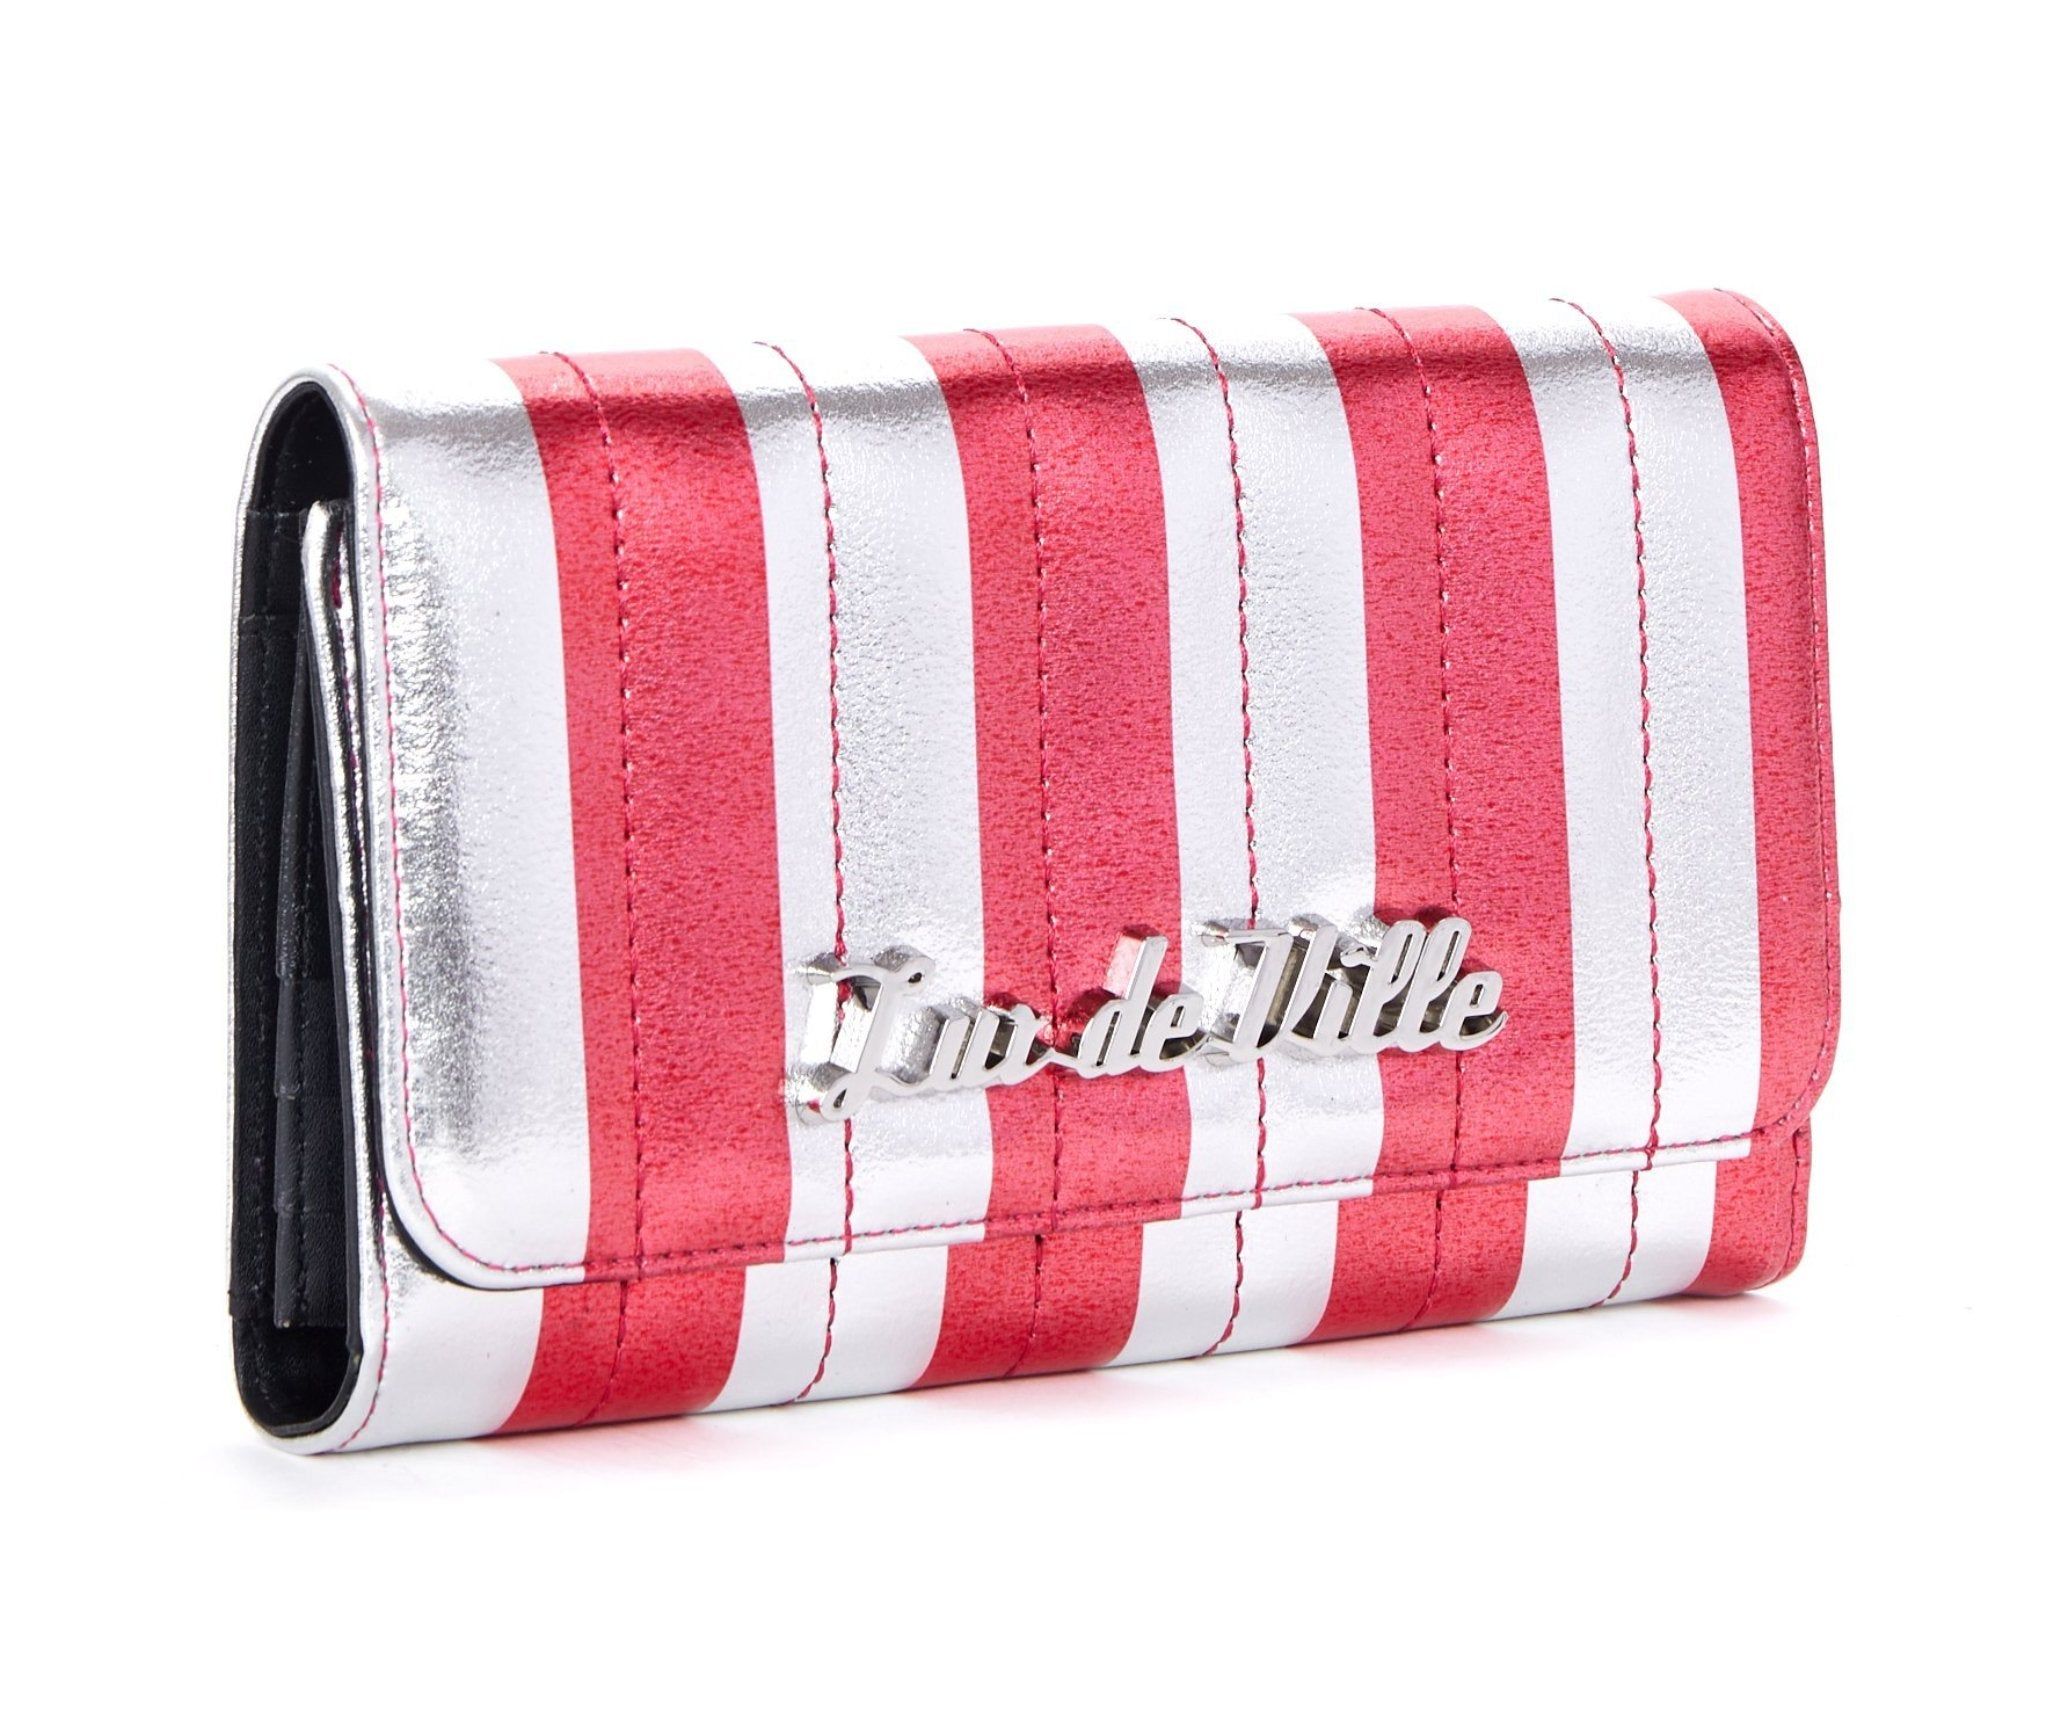 The BAD REPUTATION Wallet -SILVER & RED METALLIC